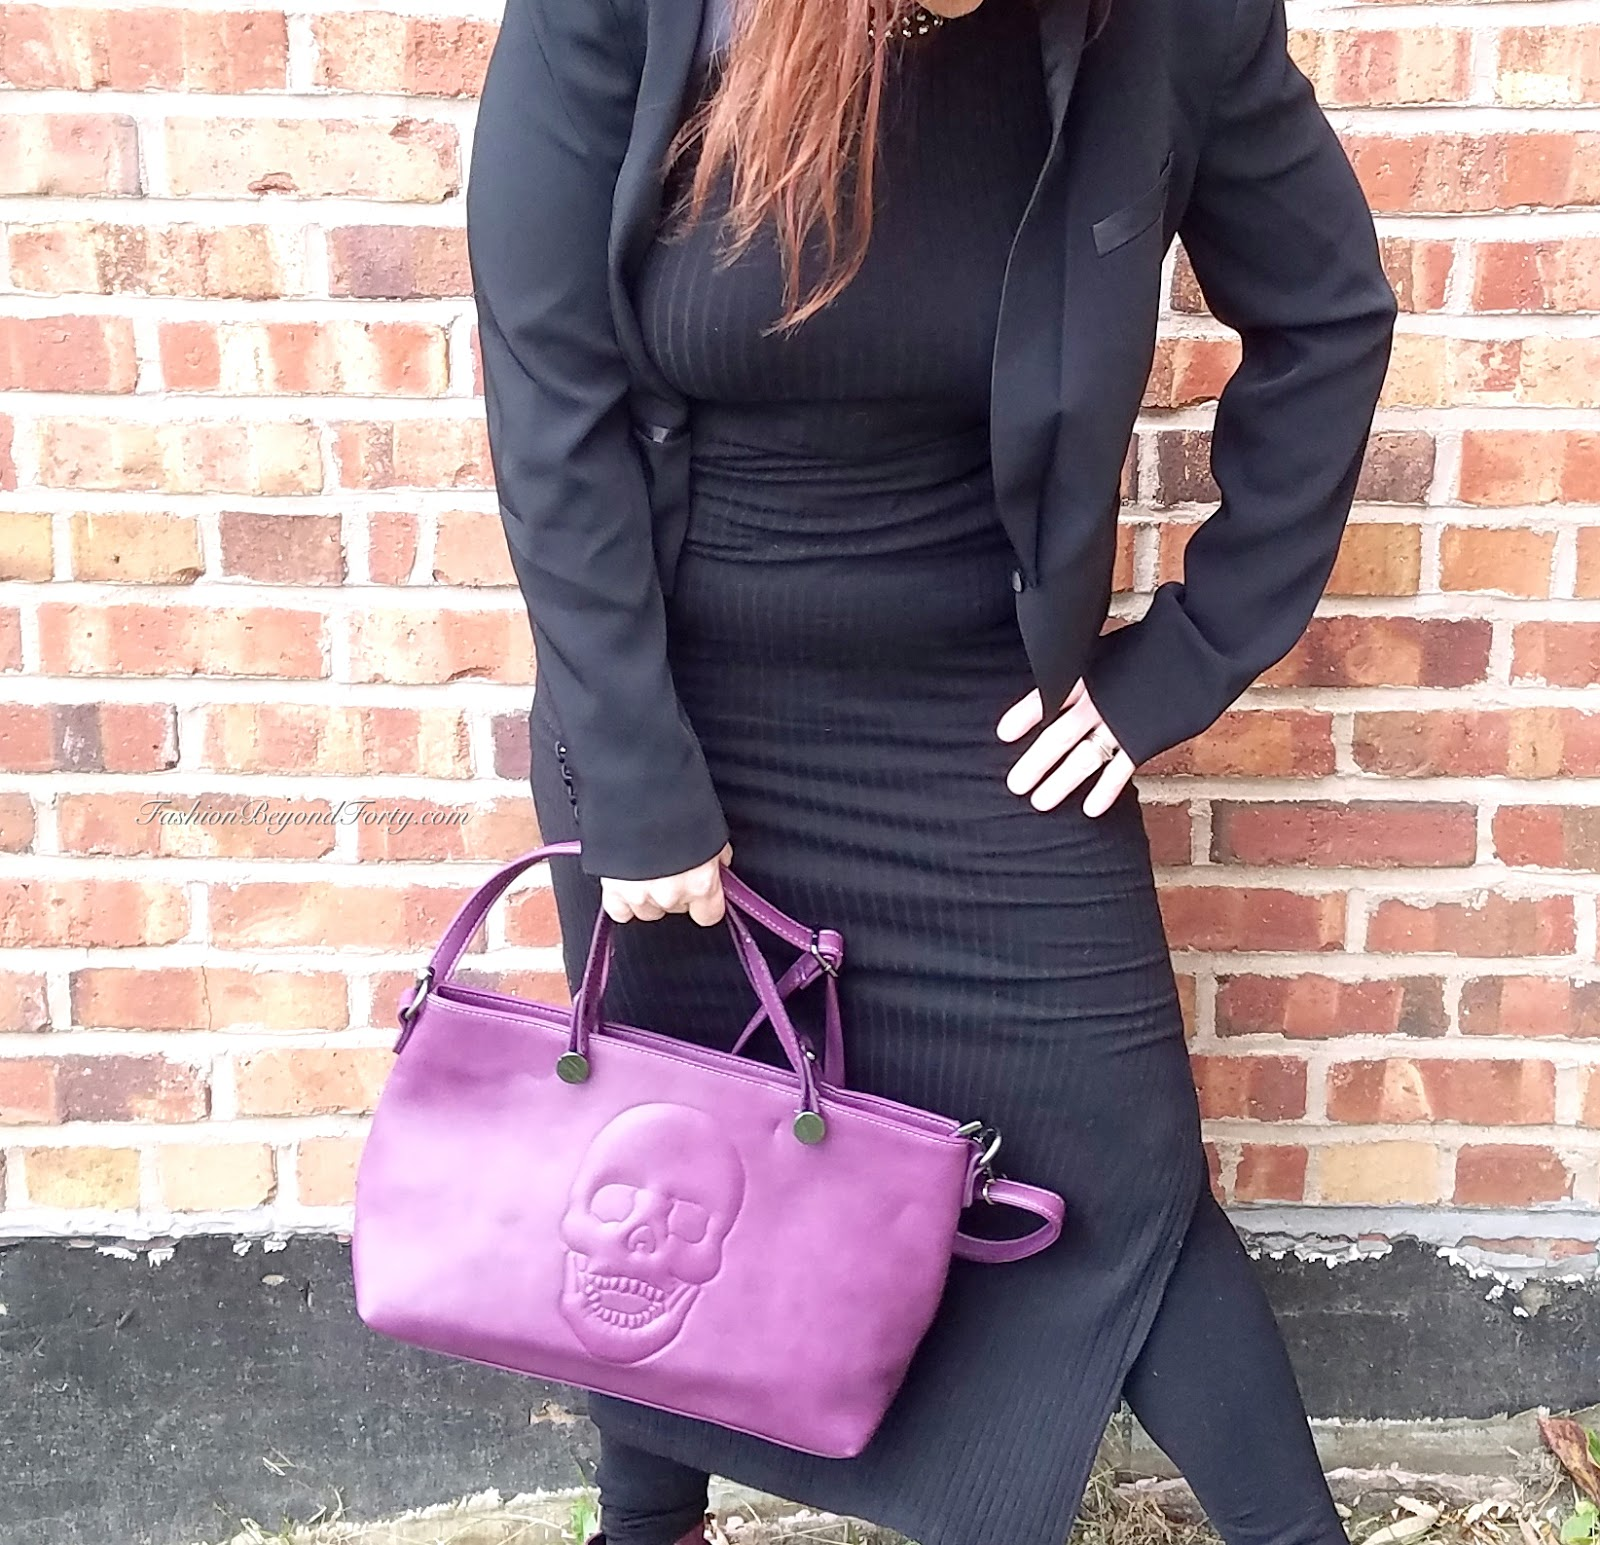 This Mechaly Women's Skully Plum Wine Vegan Leather Skull Handbag is everything ladies! Gorgeous hard to find color, and a true statement piece for your edgy holiday look!